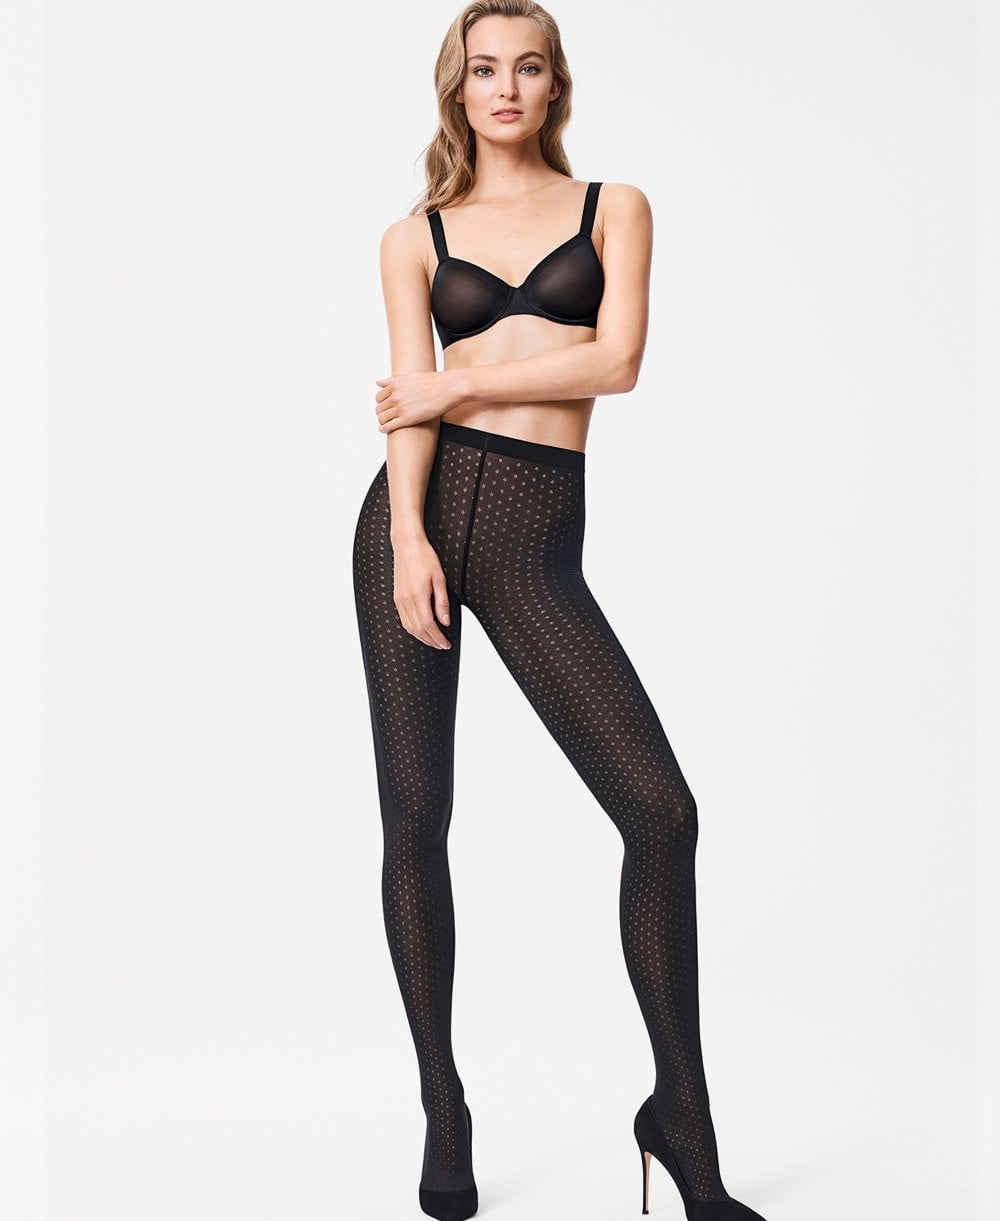 c0e053e2155005 Wolford Mira Tights - Tights from luxury-legs.com UK